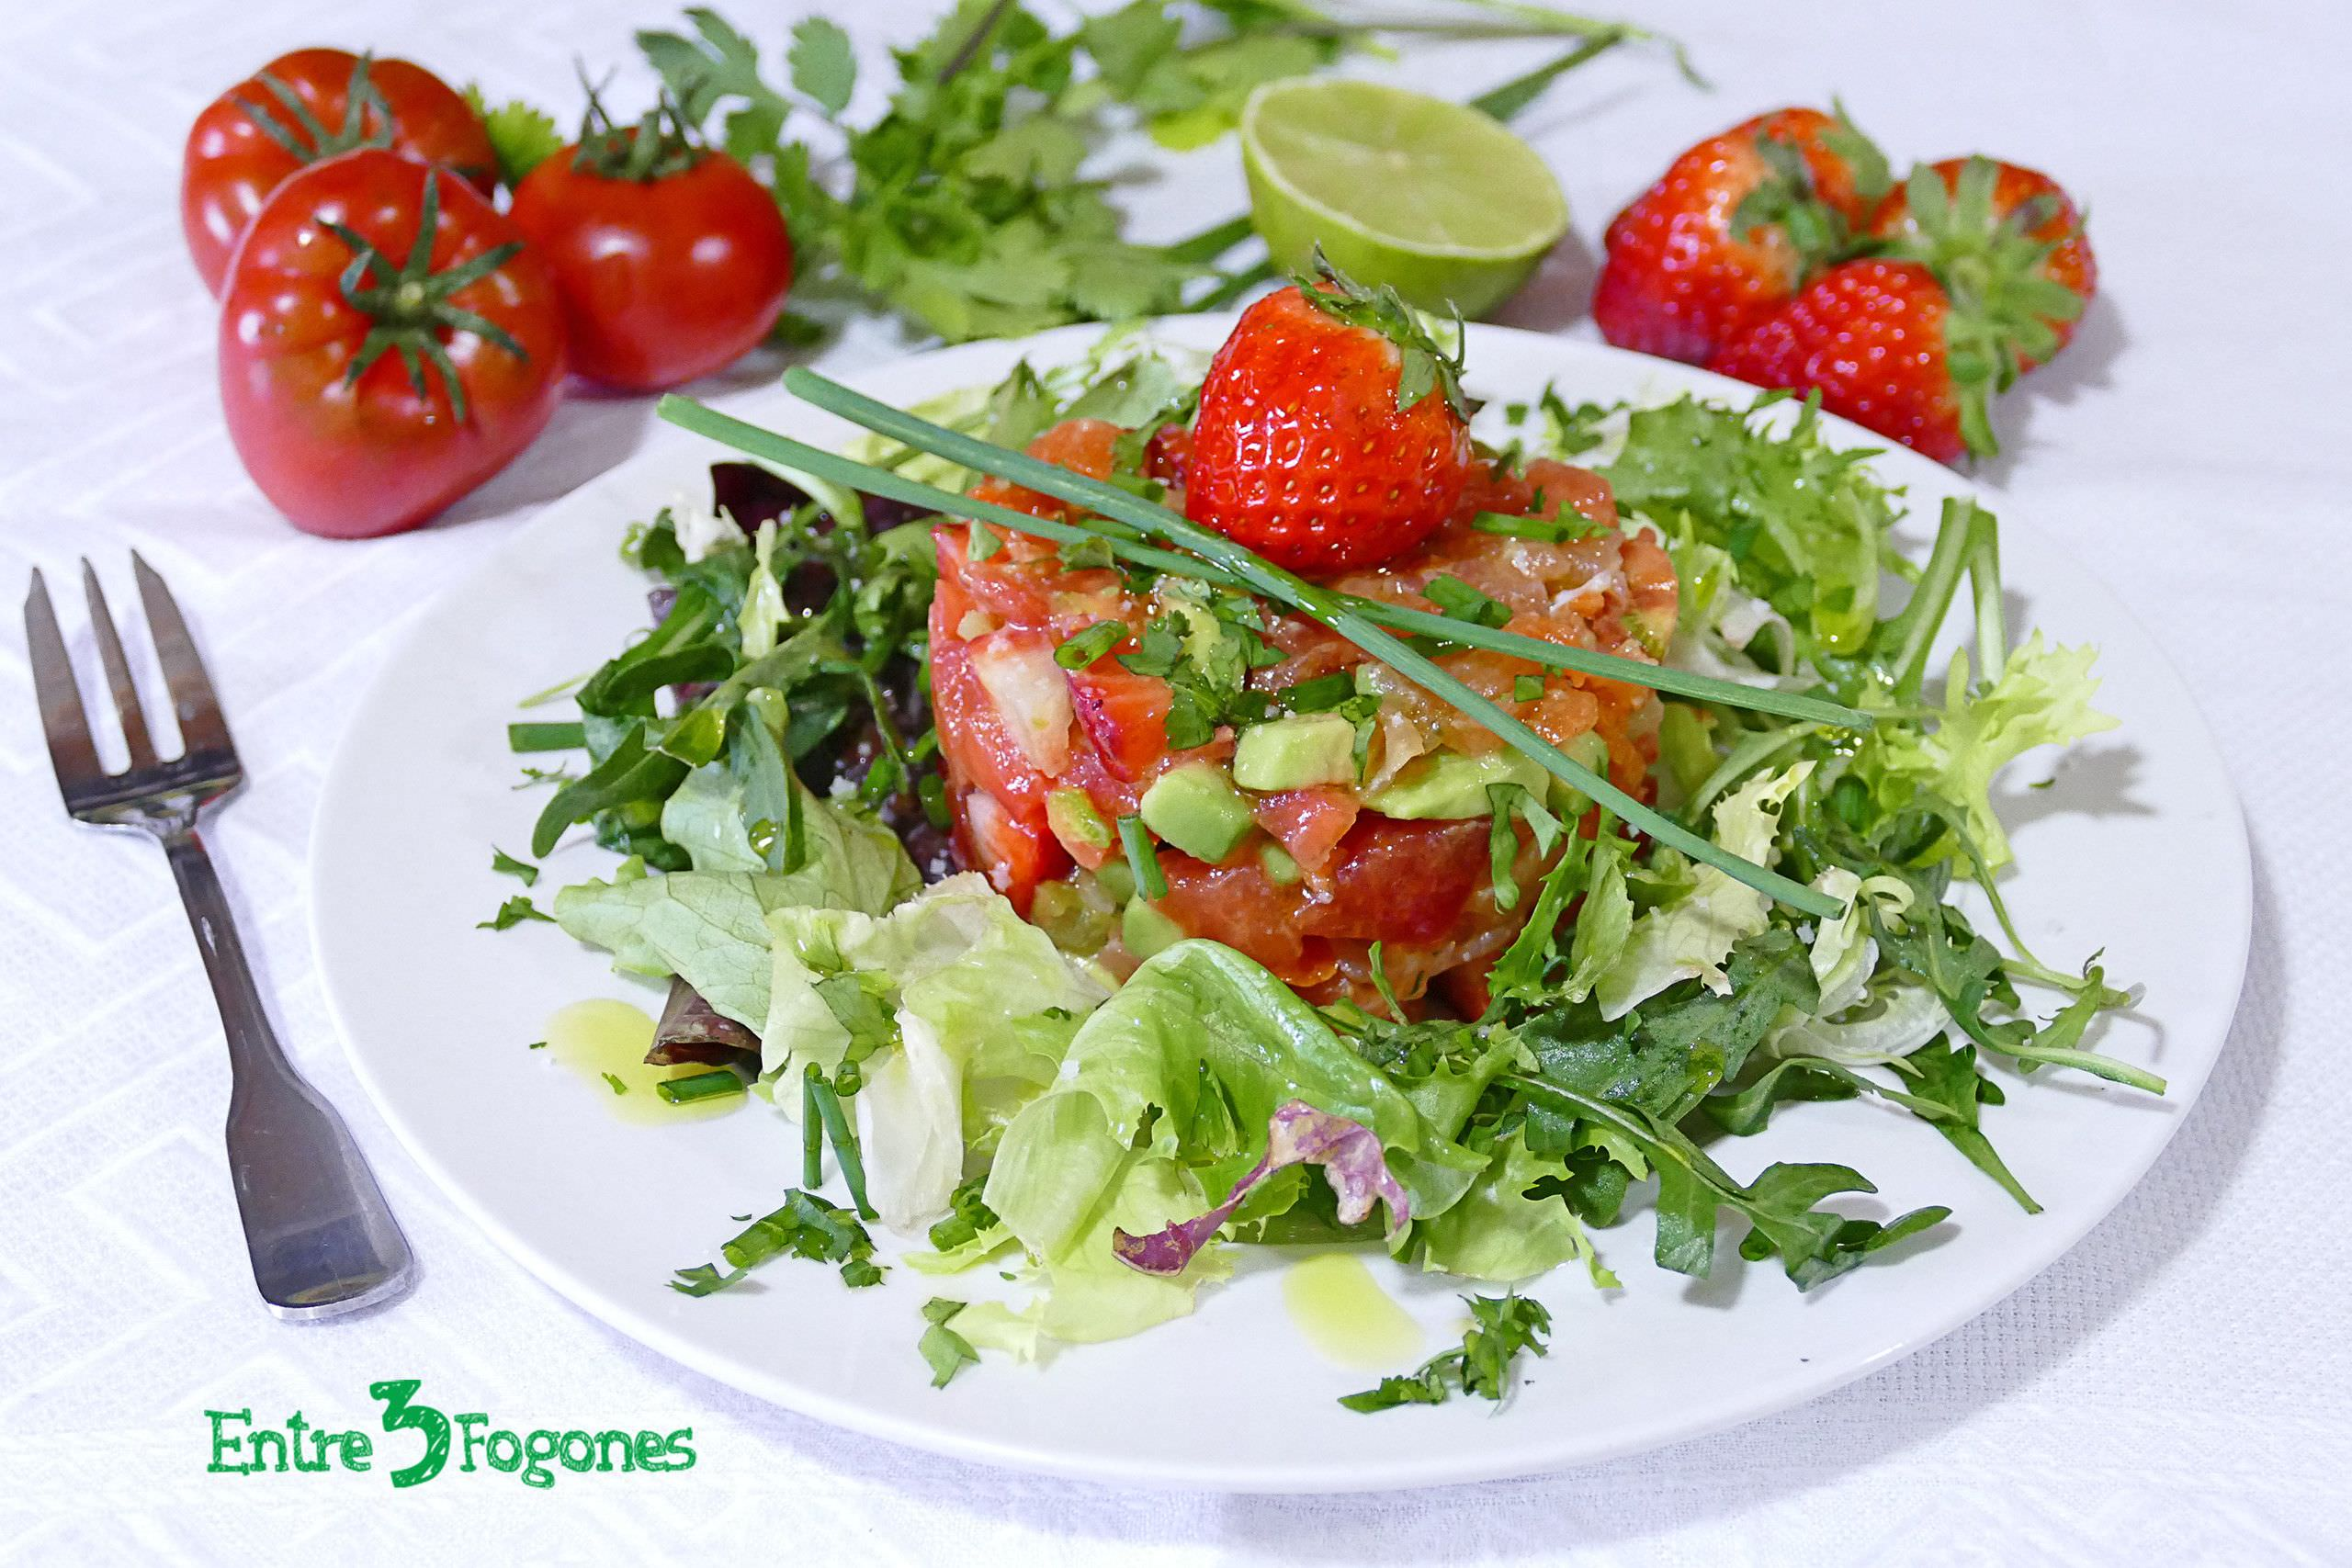 Photo of Ensalada de Fresas y Tomate con Trucha Marinada